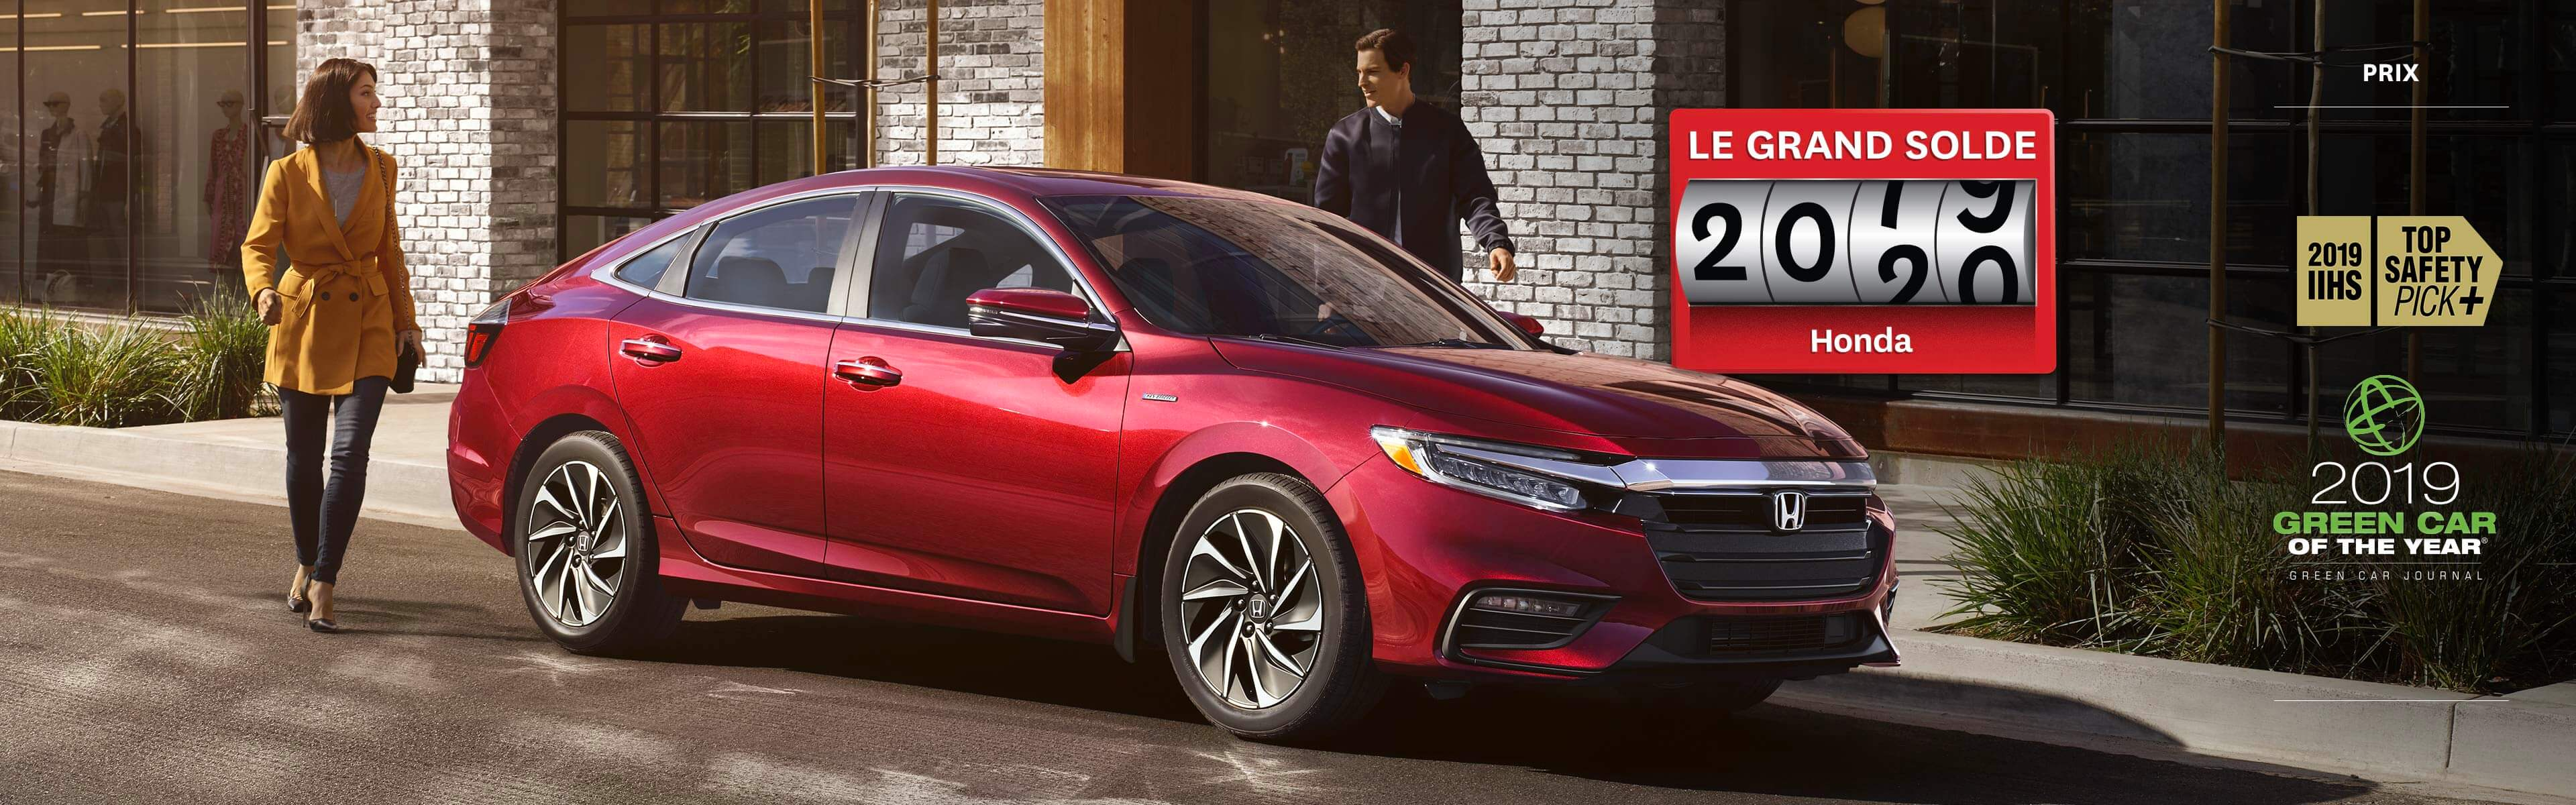 Honda Insight rouge 2019 stationnée